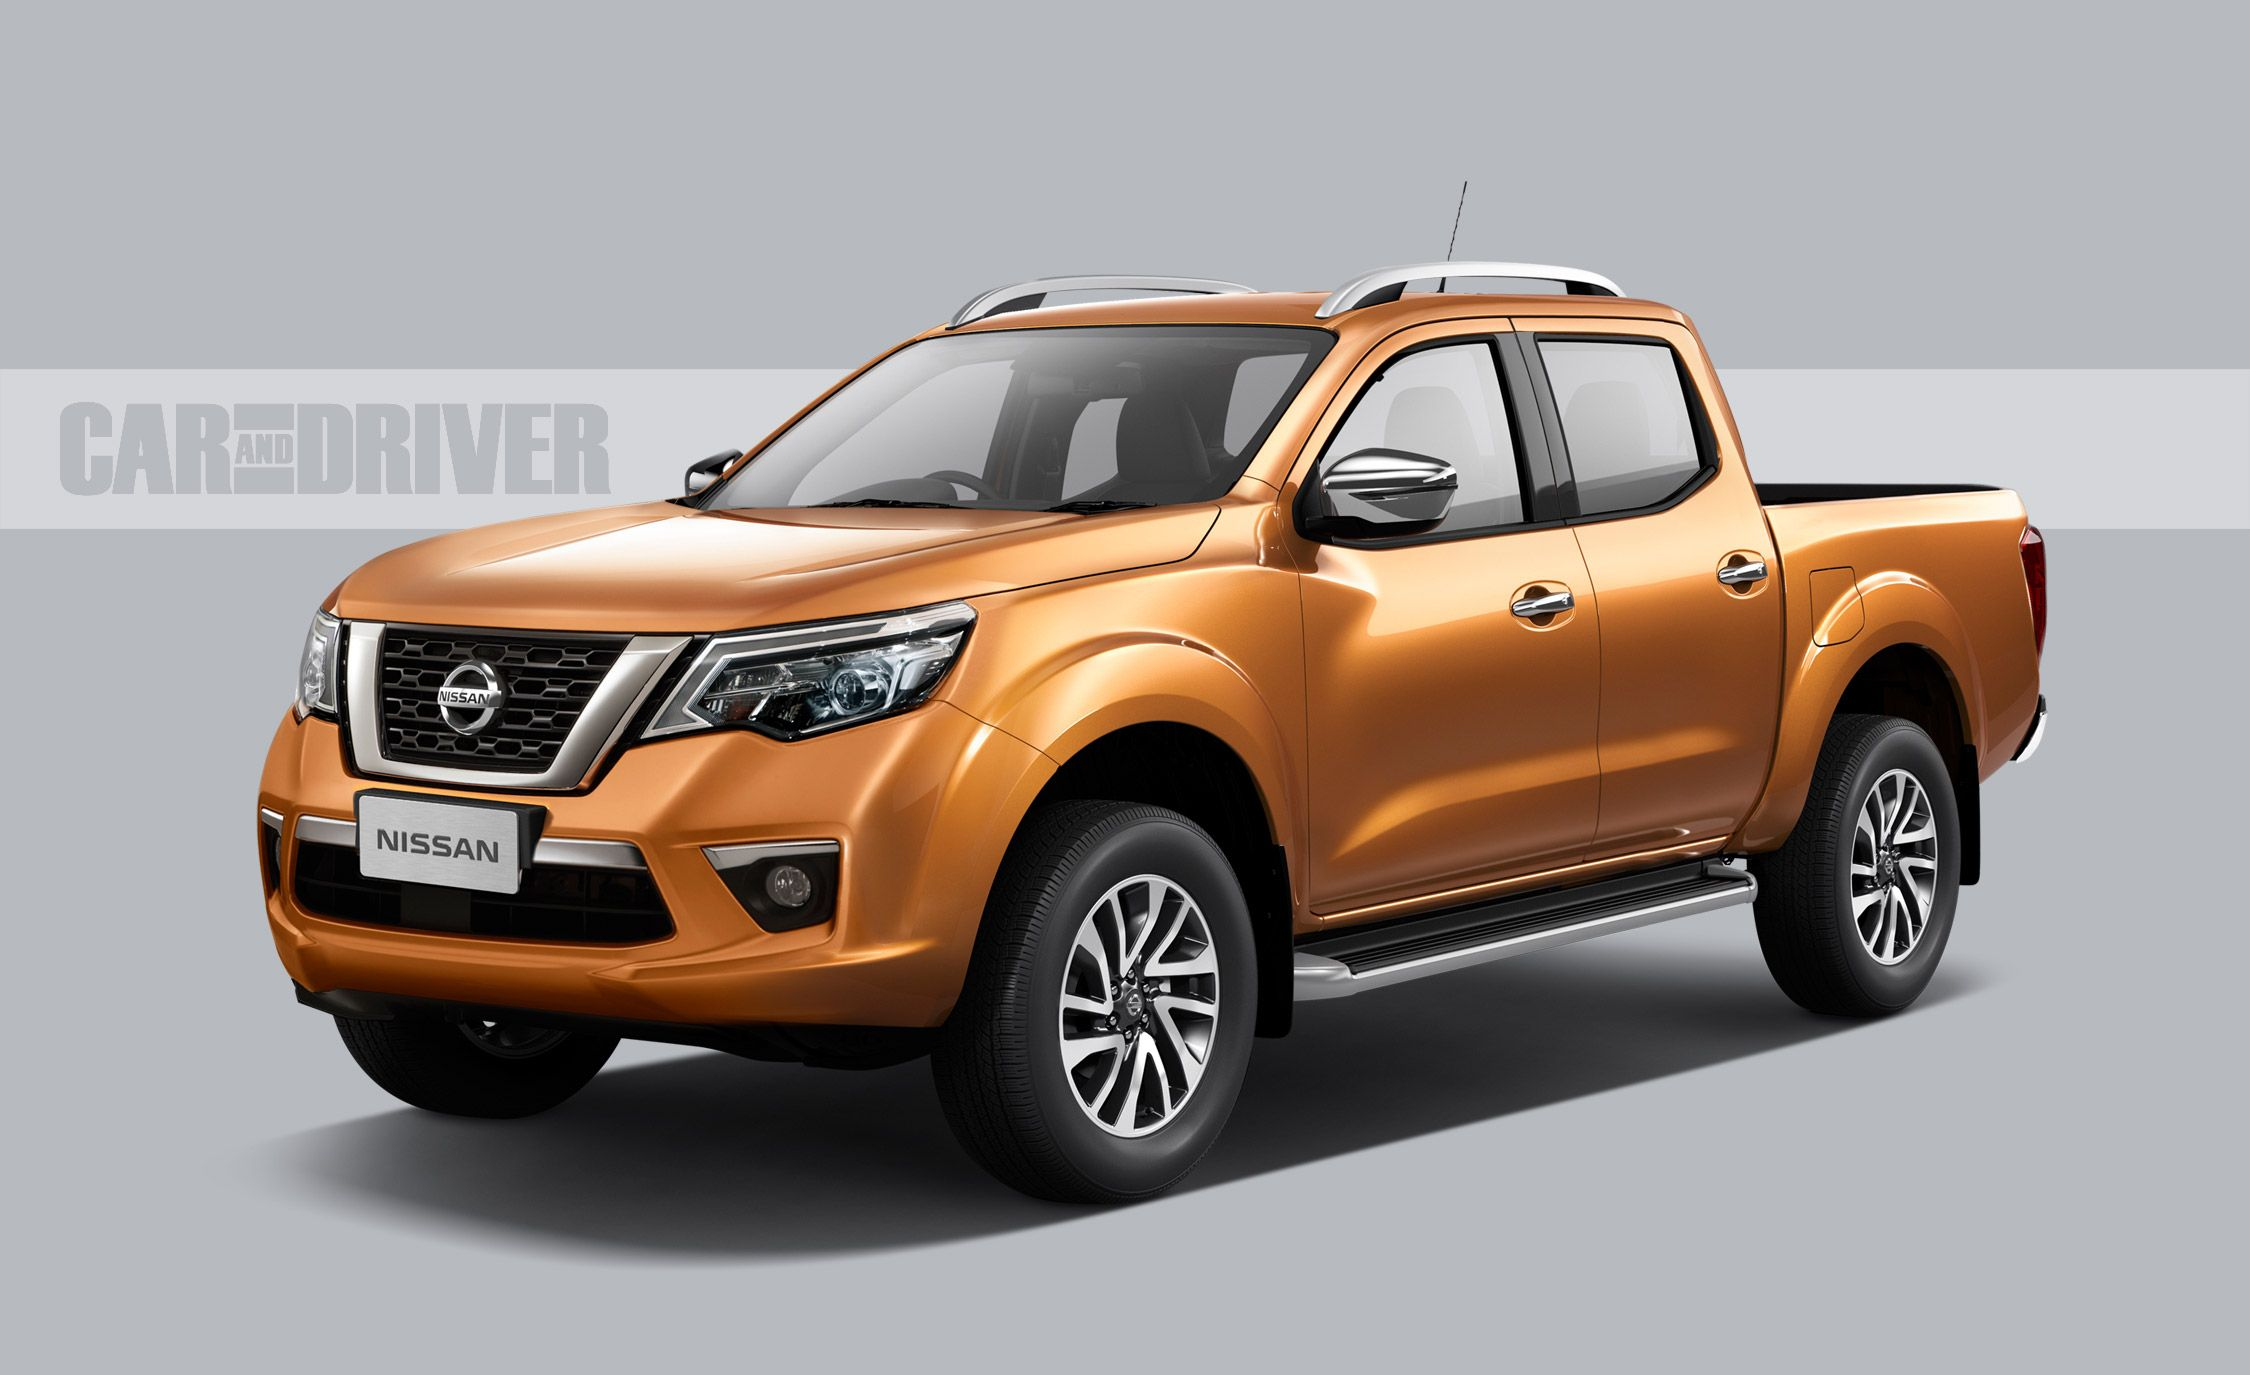 2020 Nissan Frontier A New One Is Finally On The Way 25 Cars Worth Waiting For Car And Driver